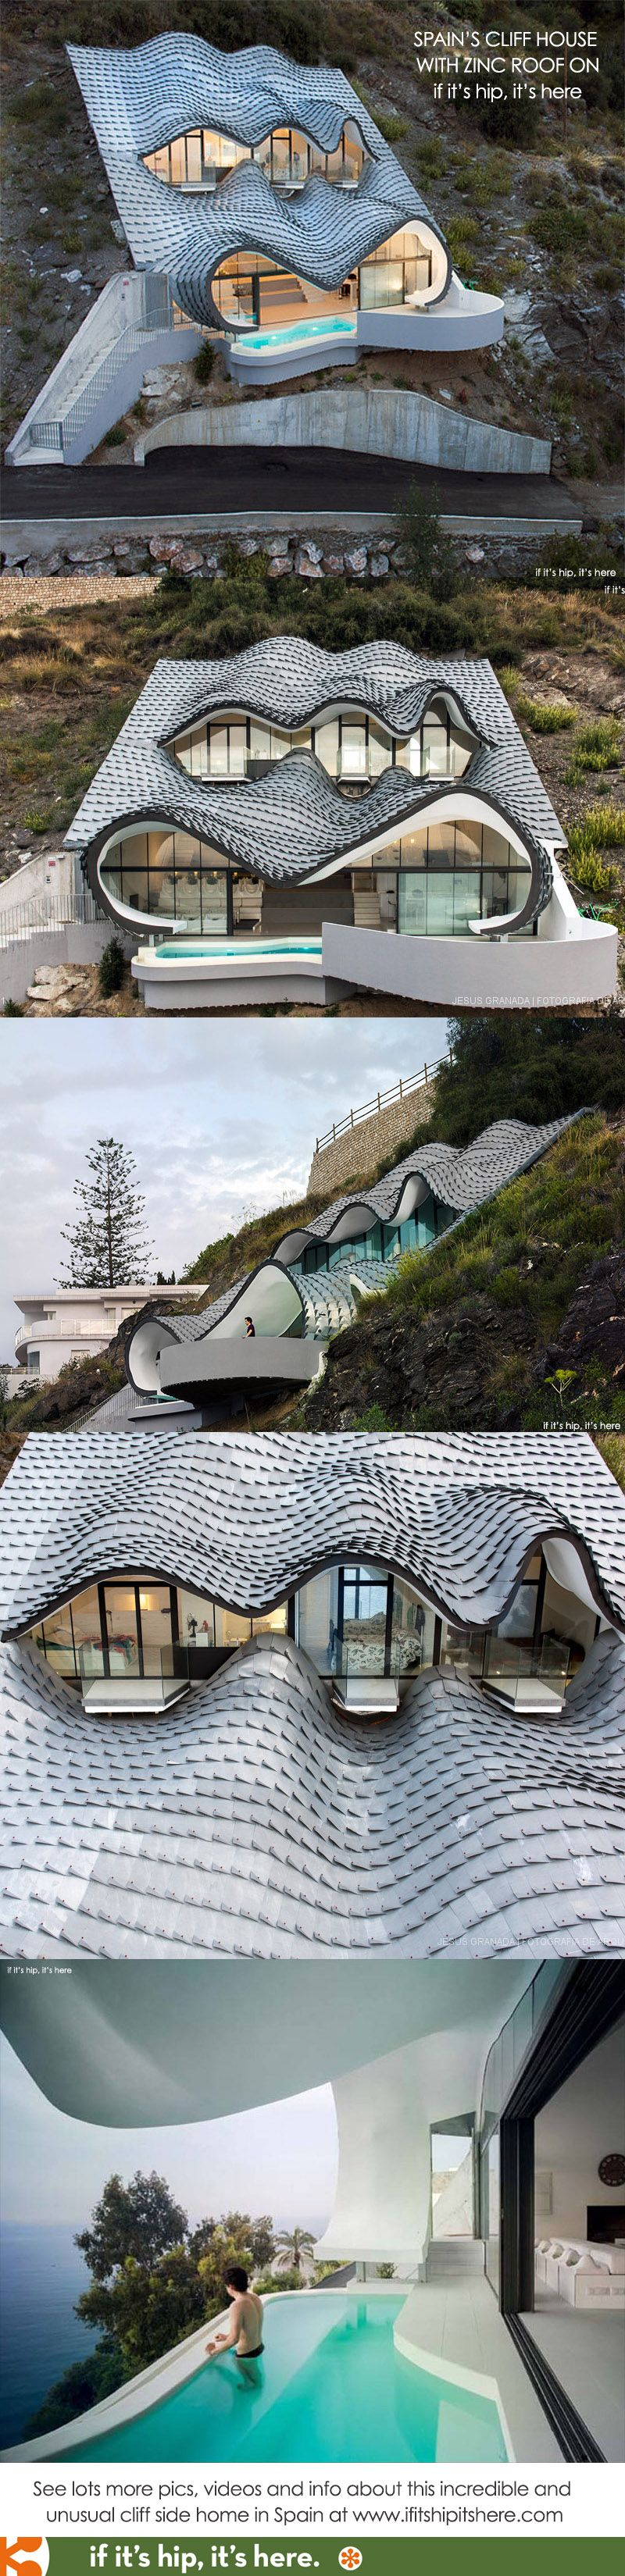 Spains Cliff House With Zinc Roof by GilBartolomé Architects